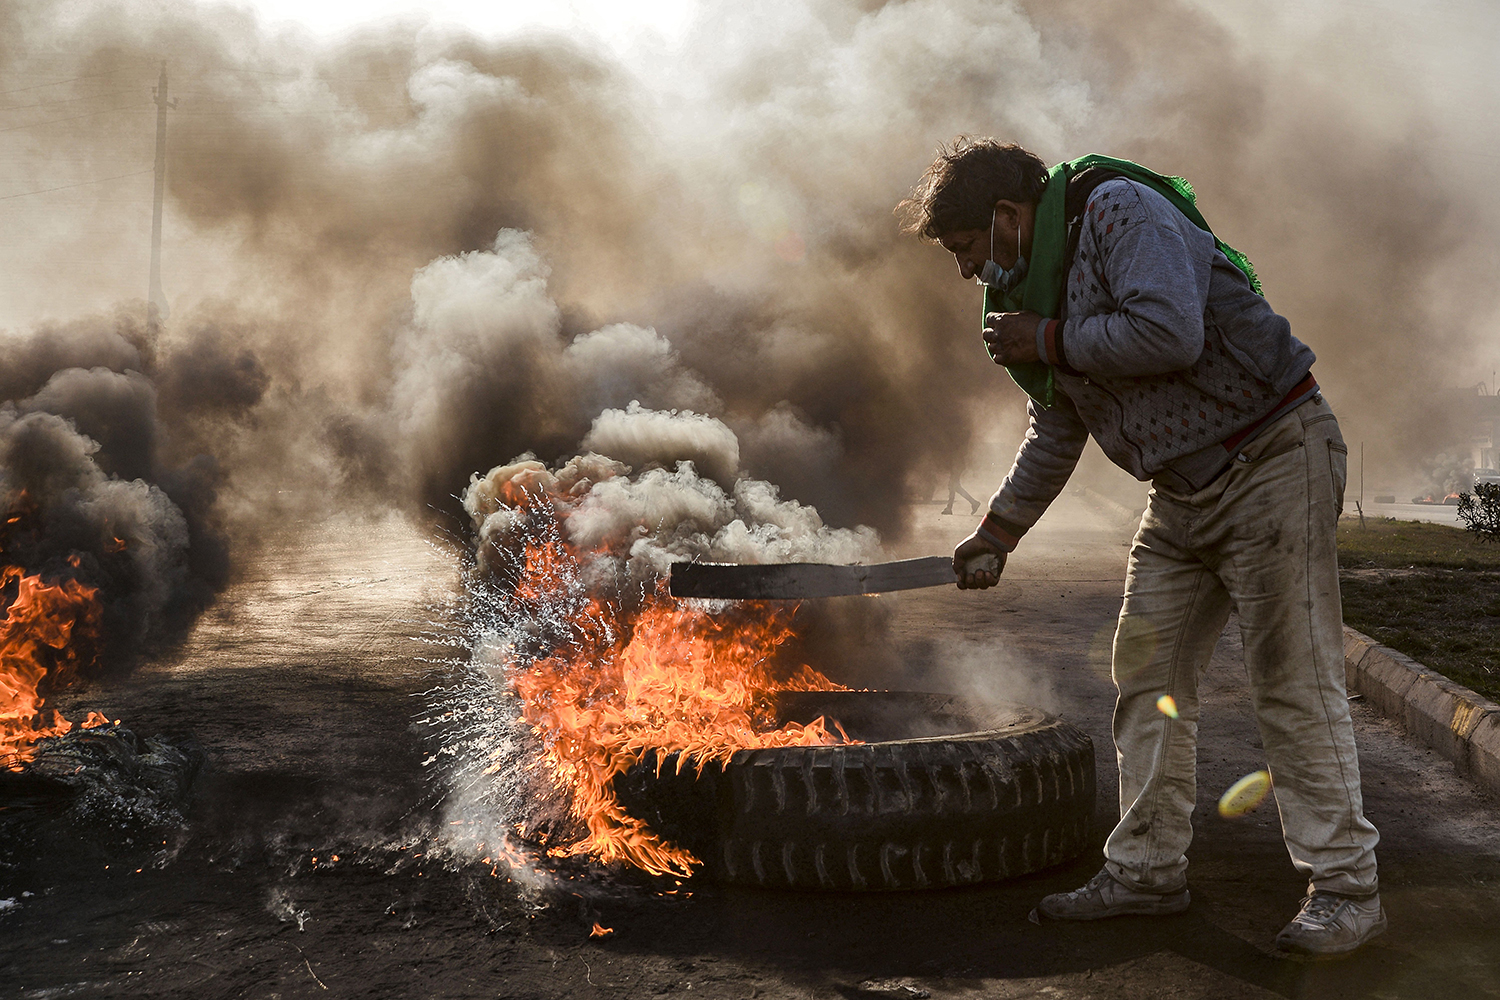 Anti-government protesters cut off a road with flaming tires during a demonstration against the new Iraqi prime minister designate in Najaf on Feb. 2. HAIDAR HAMDANI/AFP via Getty Images